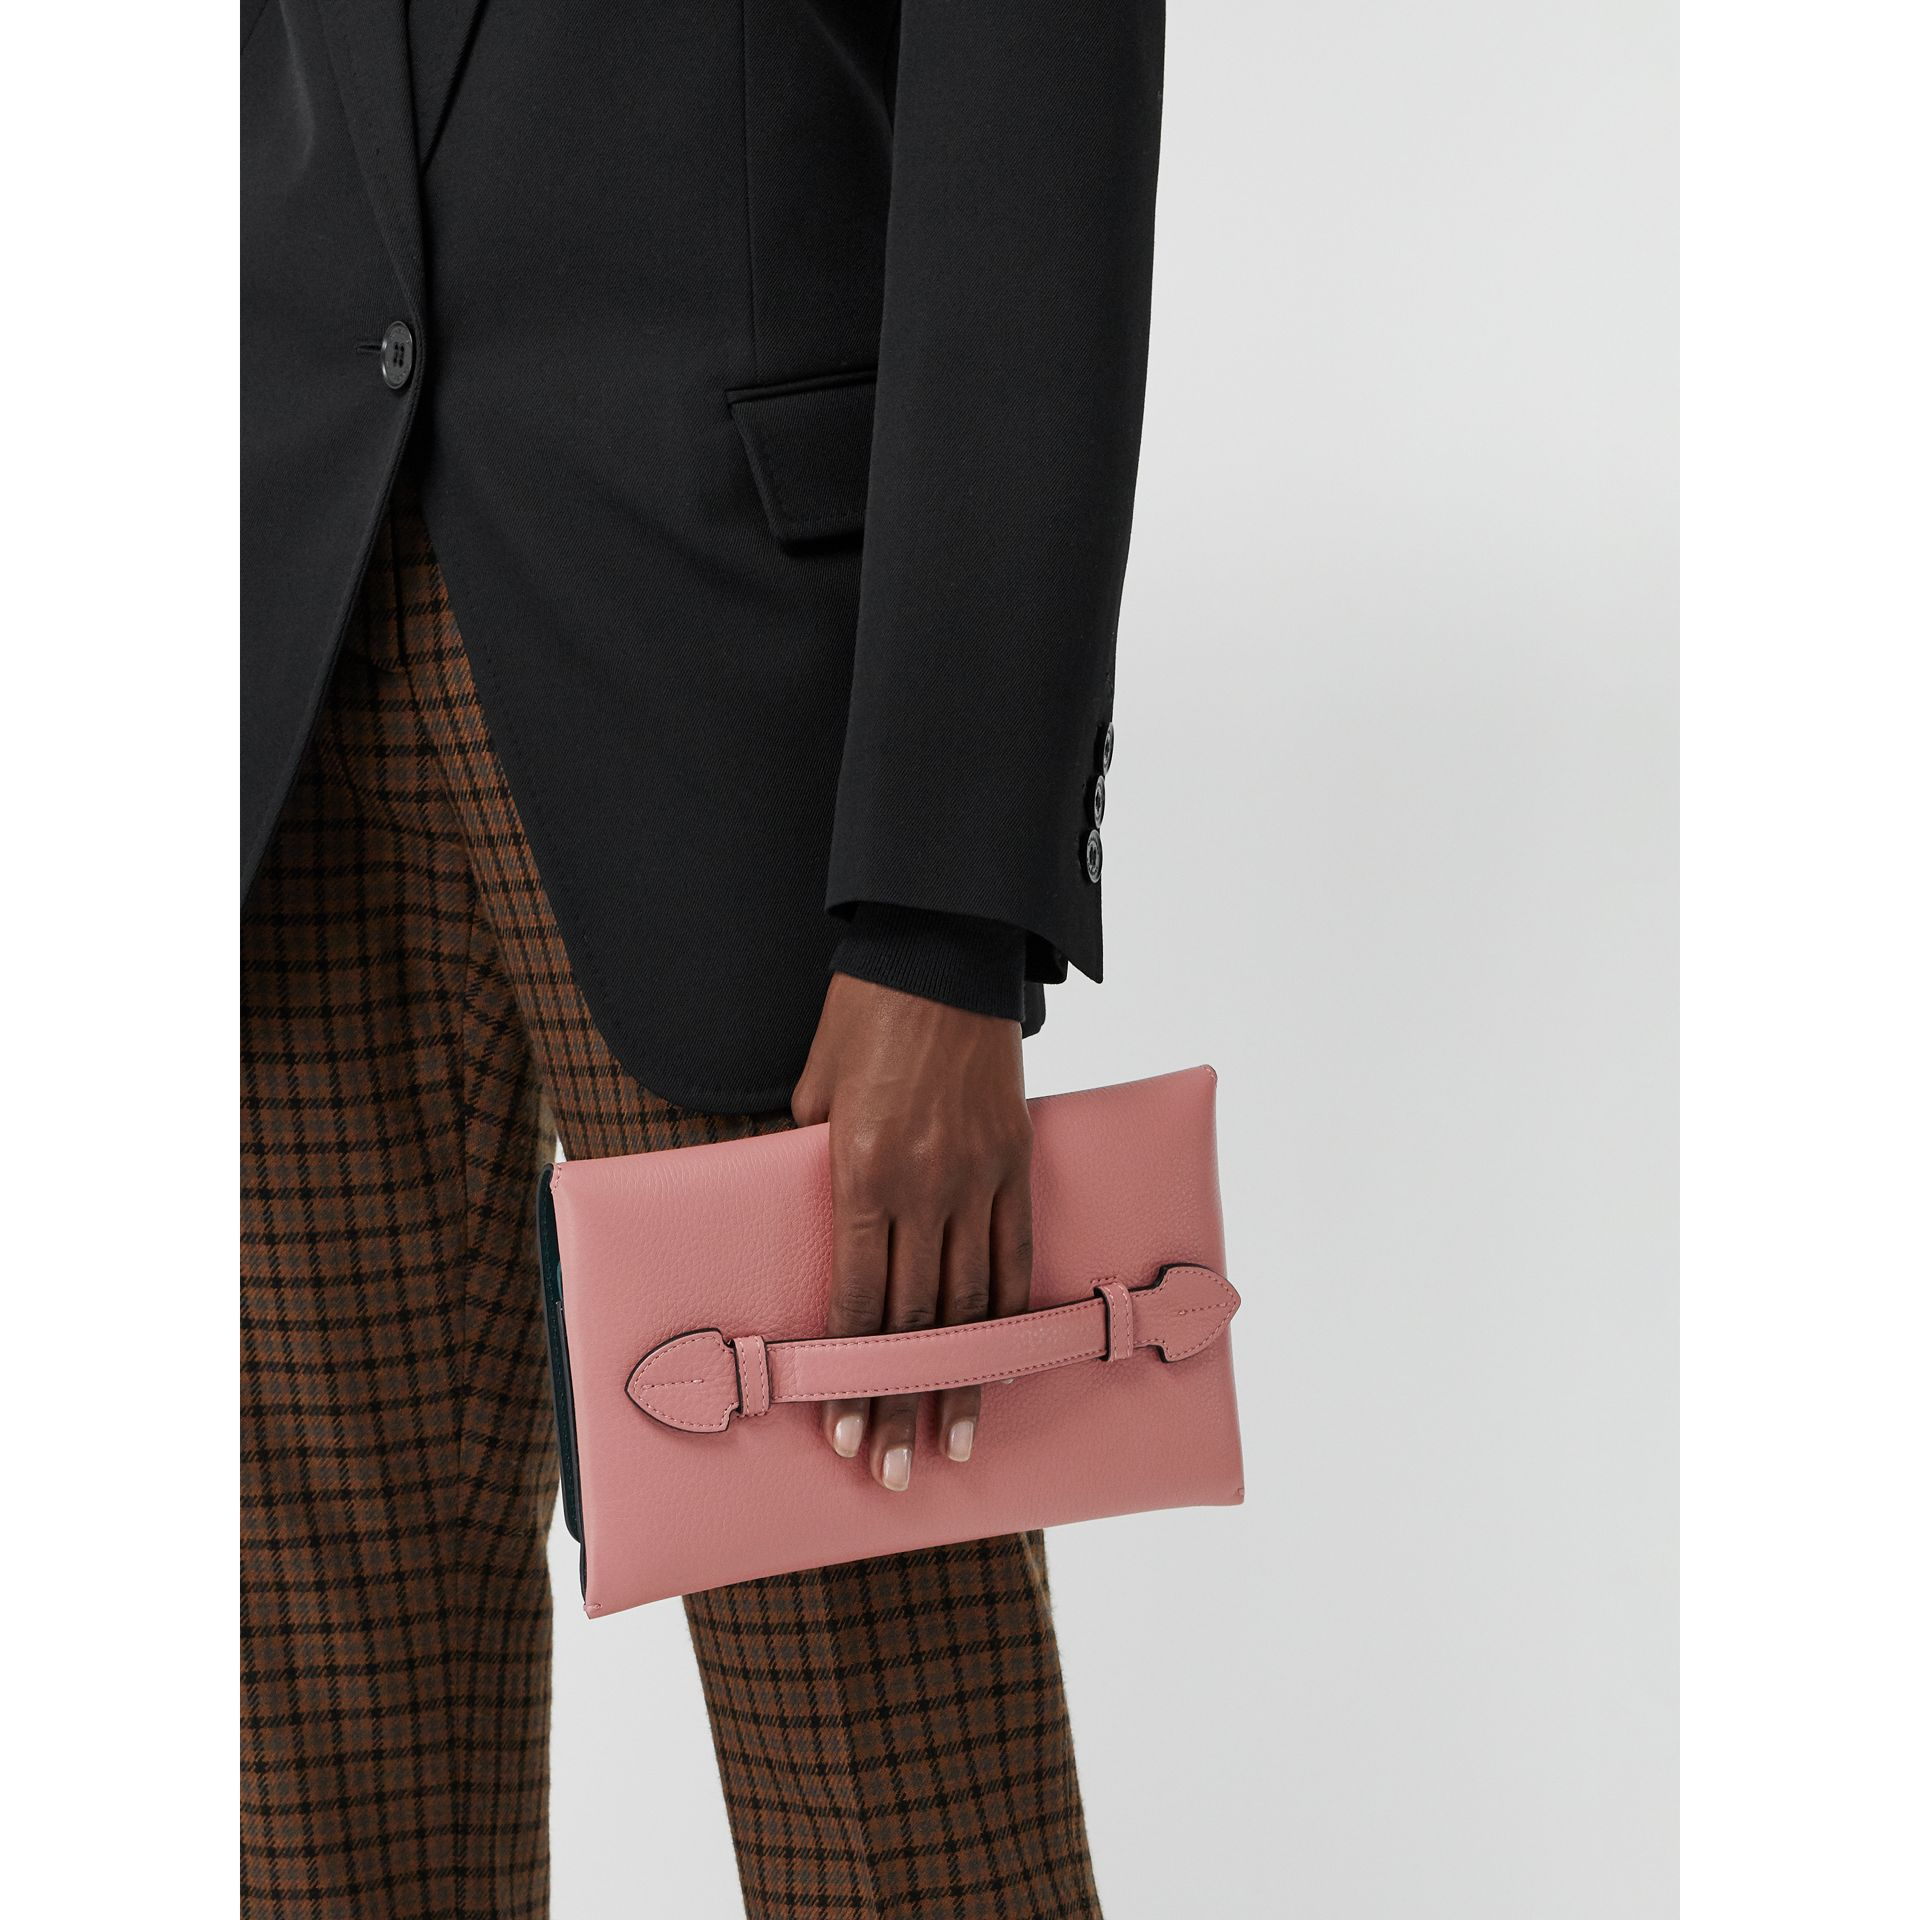 Two-tone Leather Wristlet Clutch in Dusty Rose - Women | Burberry - gallery image 3